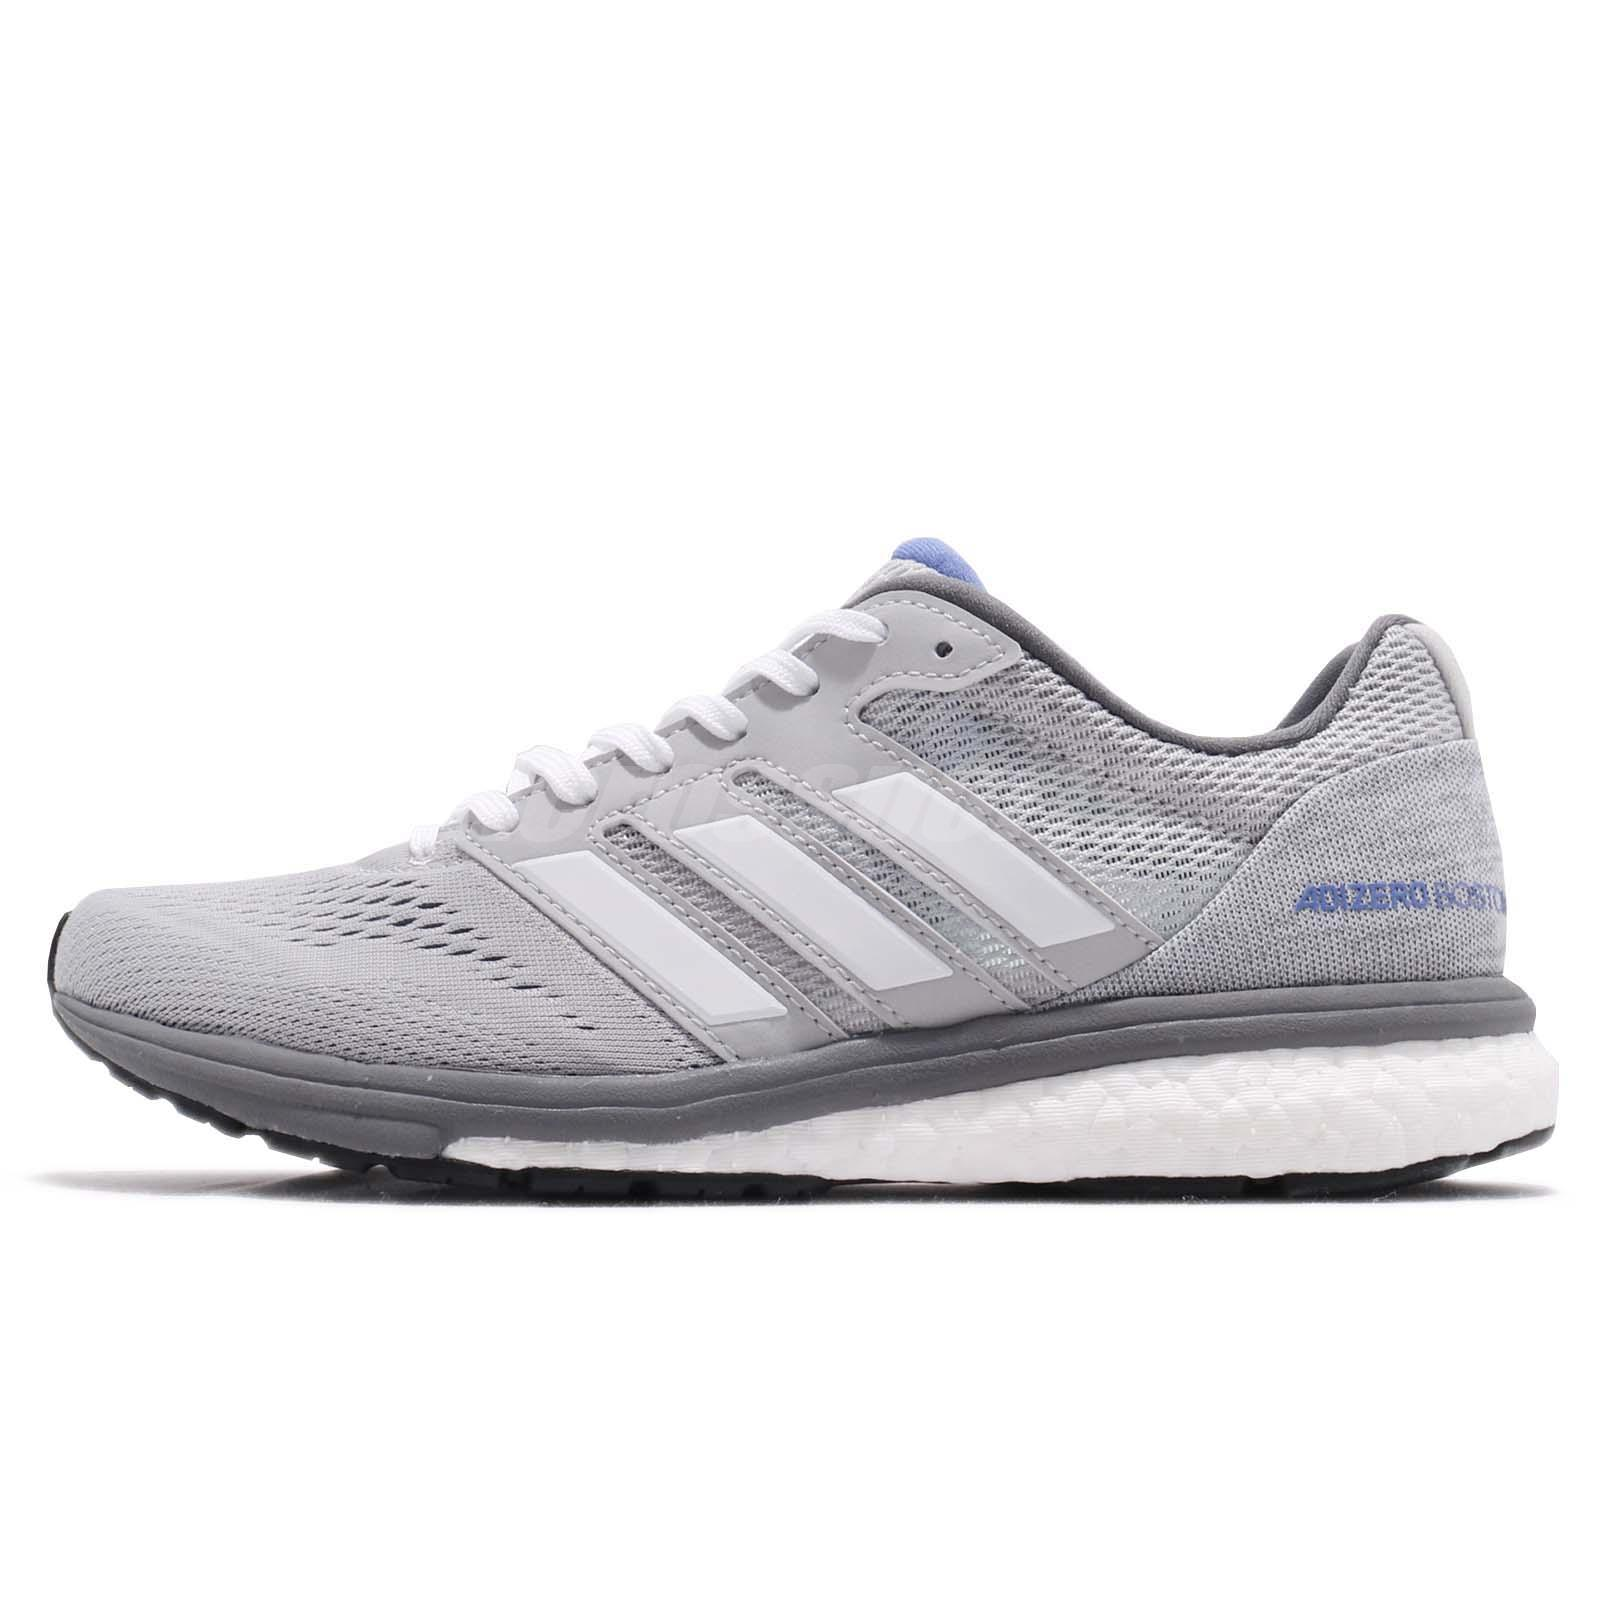 sale retailer 2a3ee 2224e adidas Adizero Boston 7 W BOOST Grey White Womens Running Shoes AQ0199